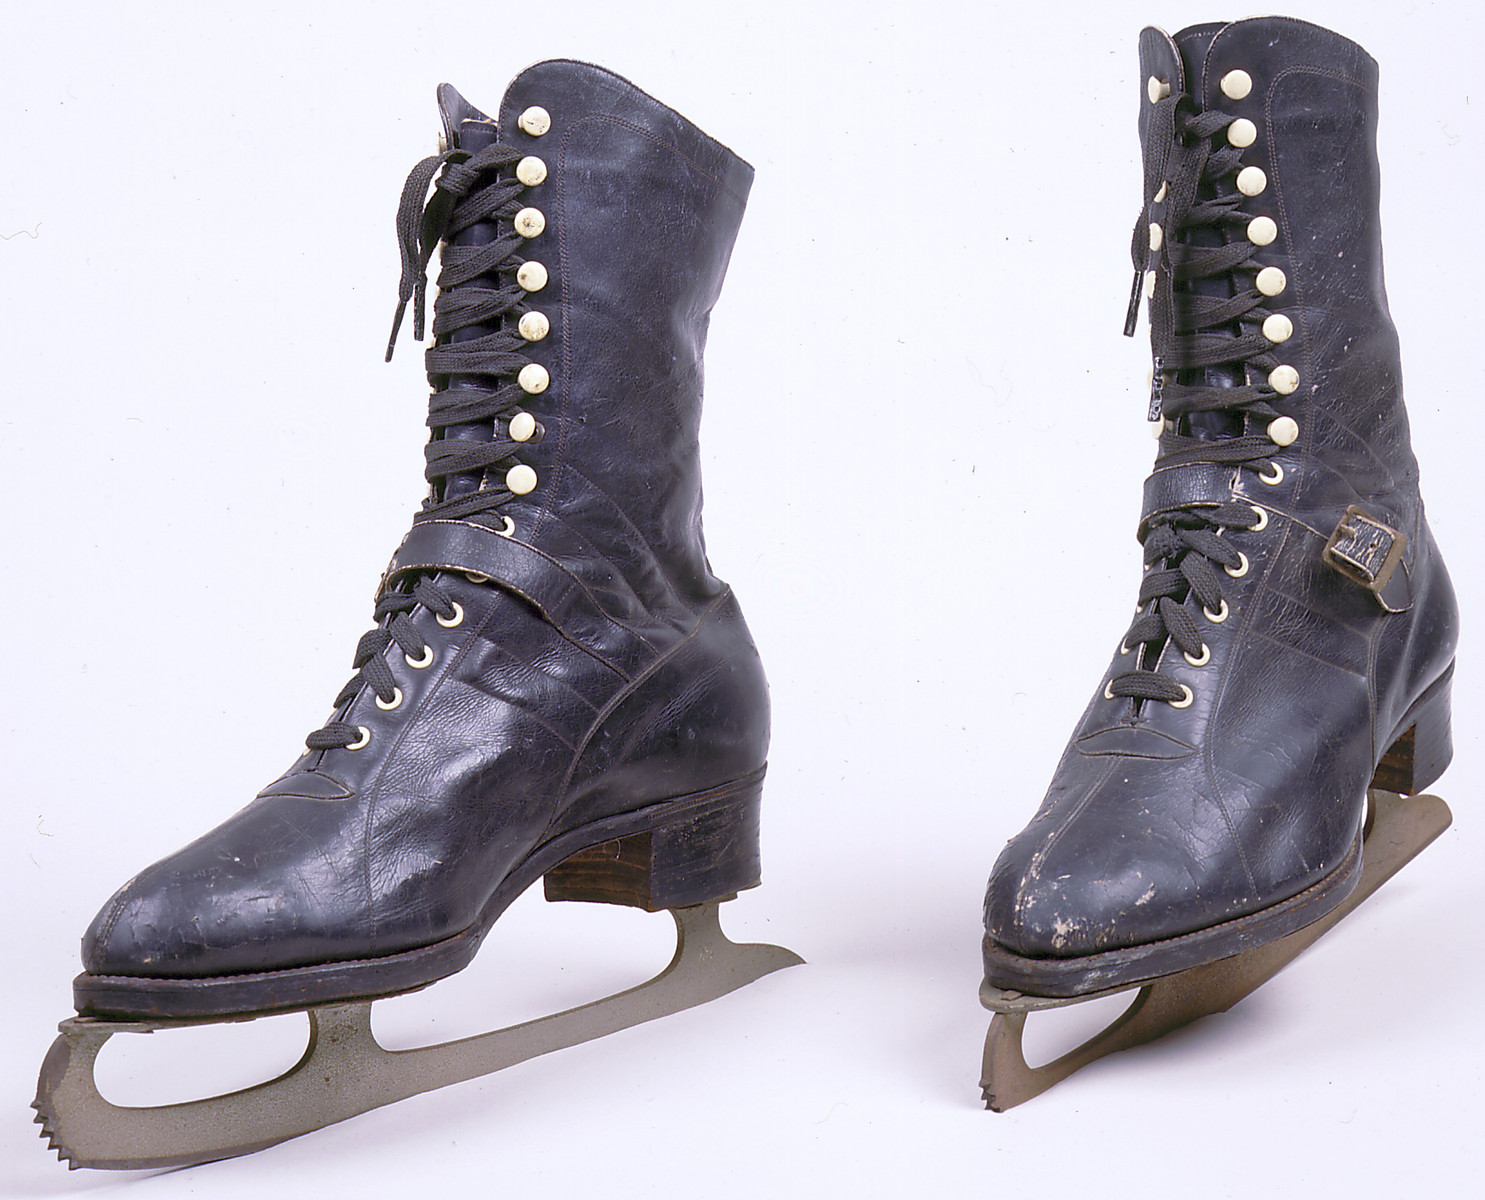 These ice skates were among the few personal belongings Hanni Sondheimer took with her on her journey from Kaunas to Shanghai.  Hanni, who was then only a teenager, also carried a pair of red shoes and a picture of Gary Cooper.